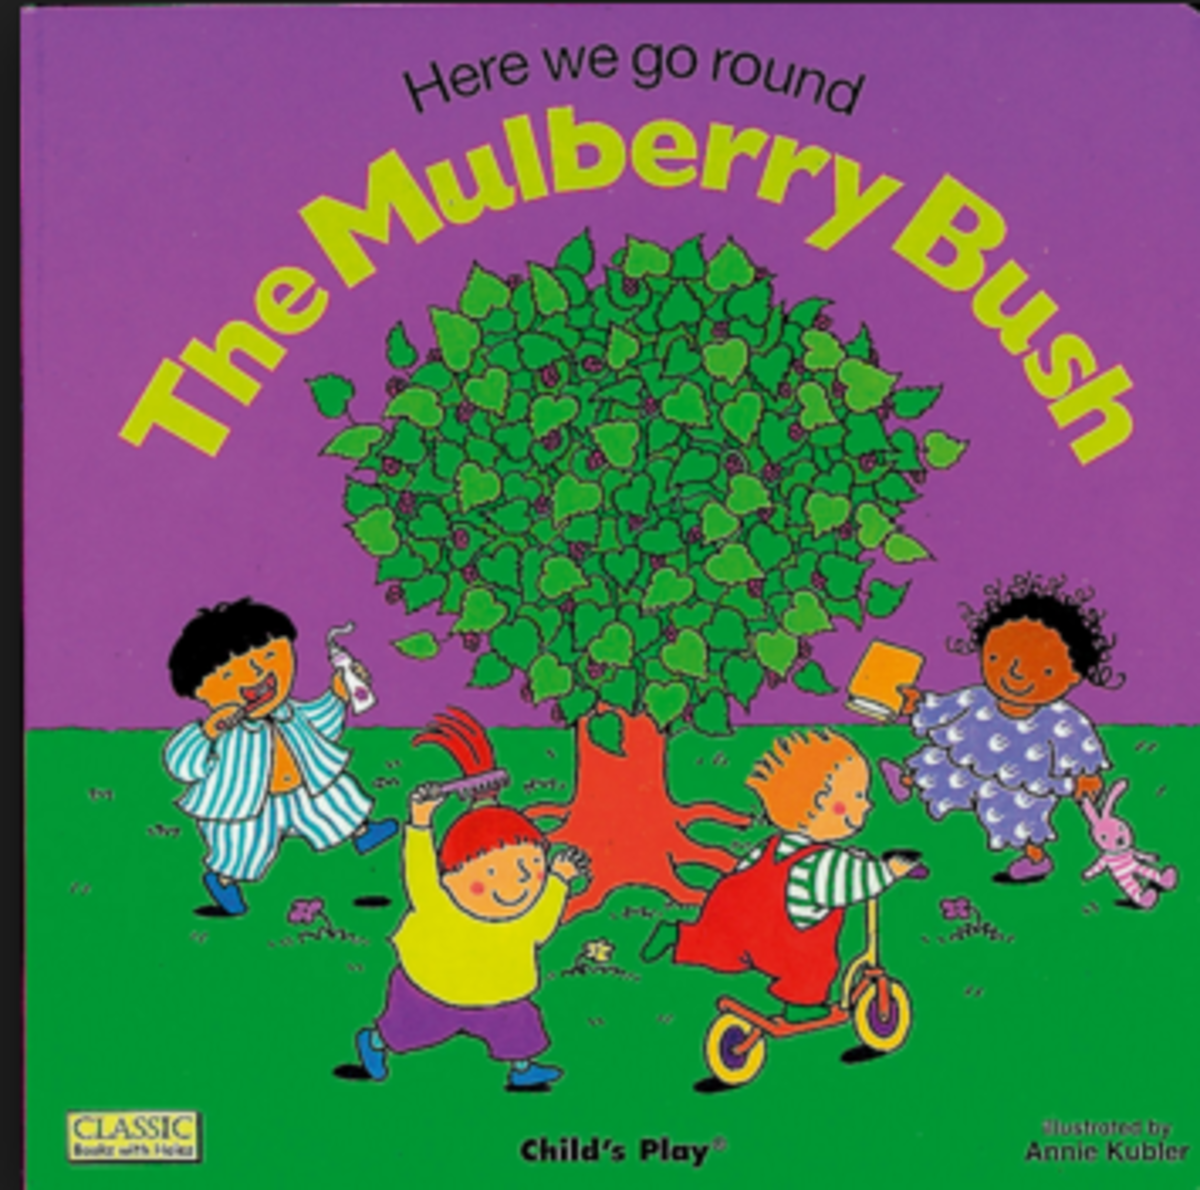 The infamous Mulberry Bush